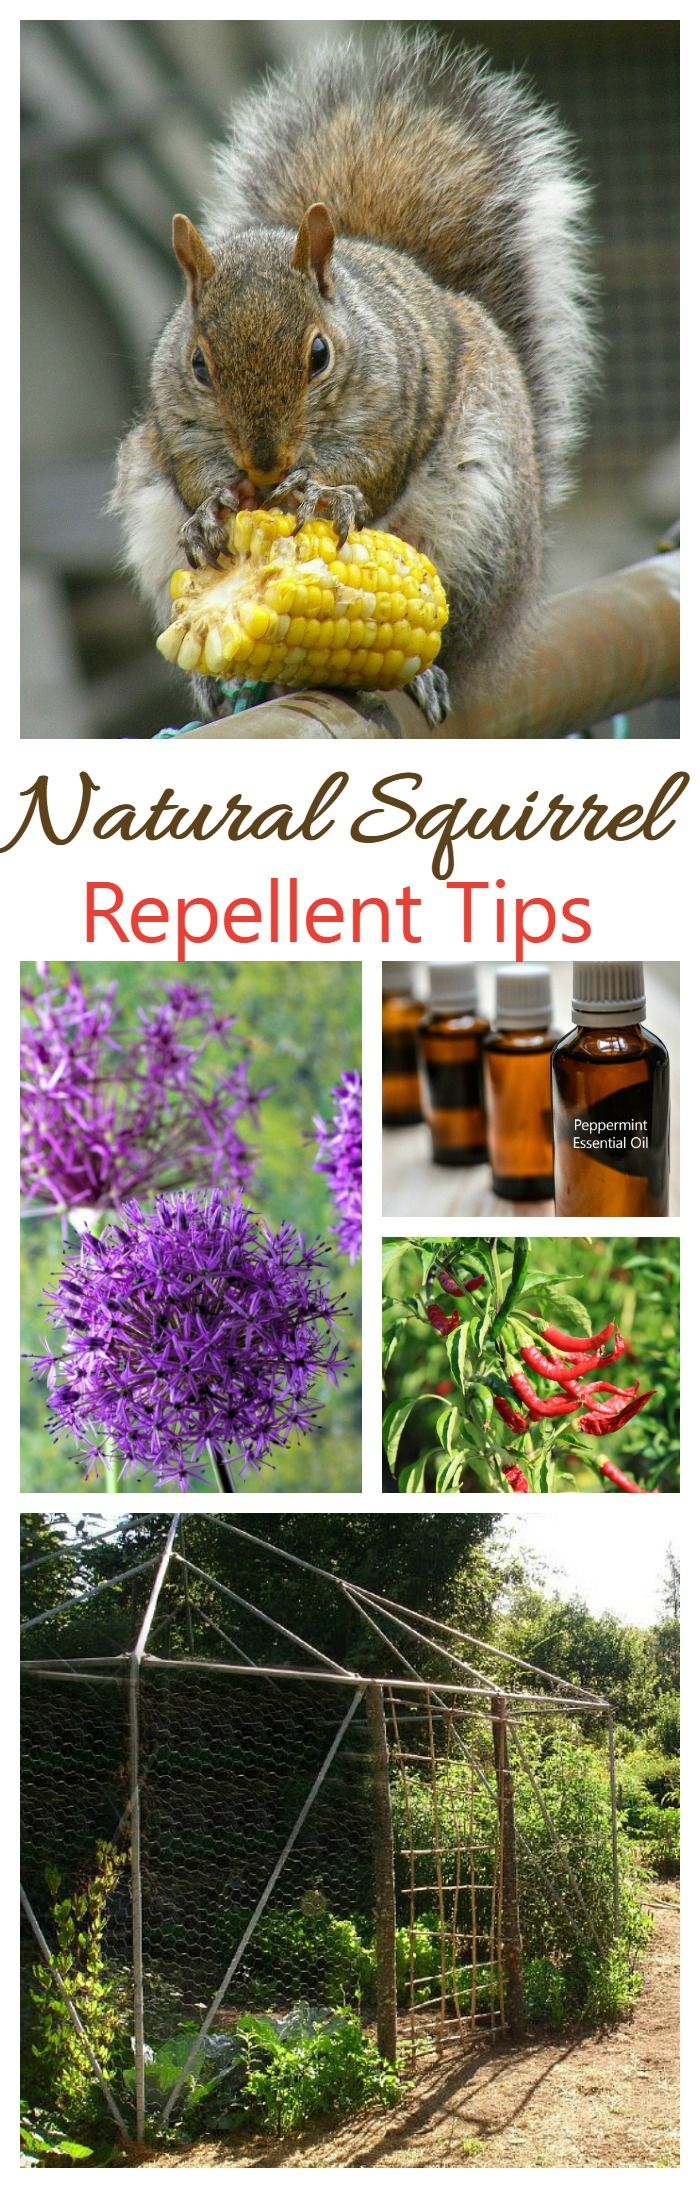 Natural Squirrel Repellent Ideas   Keep The Critters Out Of Your Yard